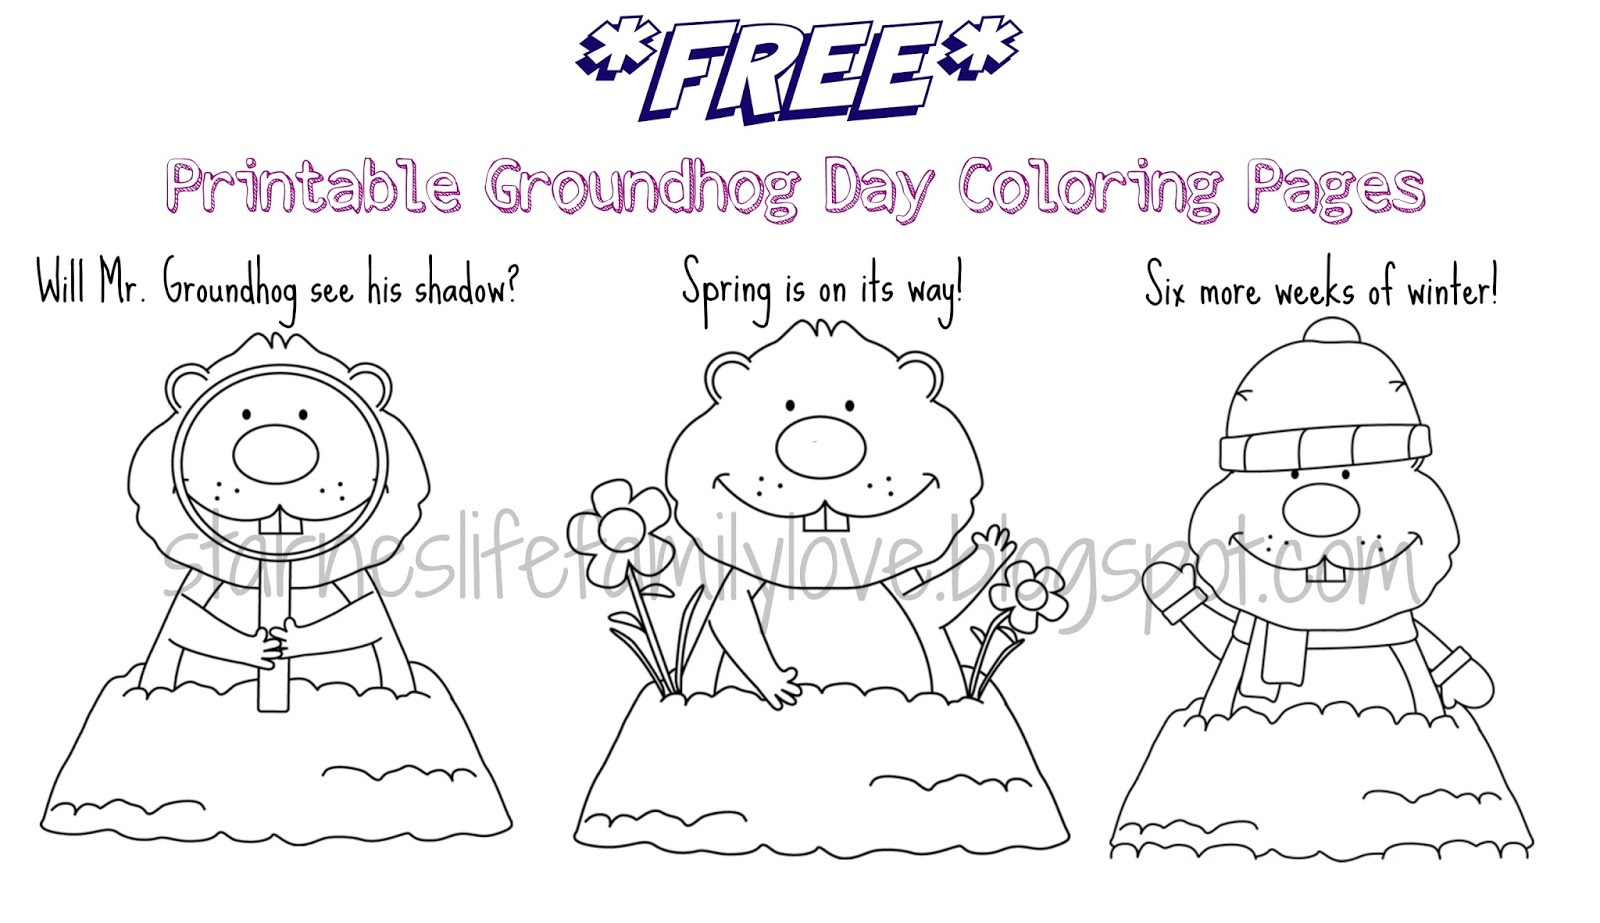 Life Family Love Groundhog Day Fun Plus Free Printables